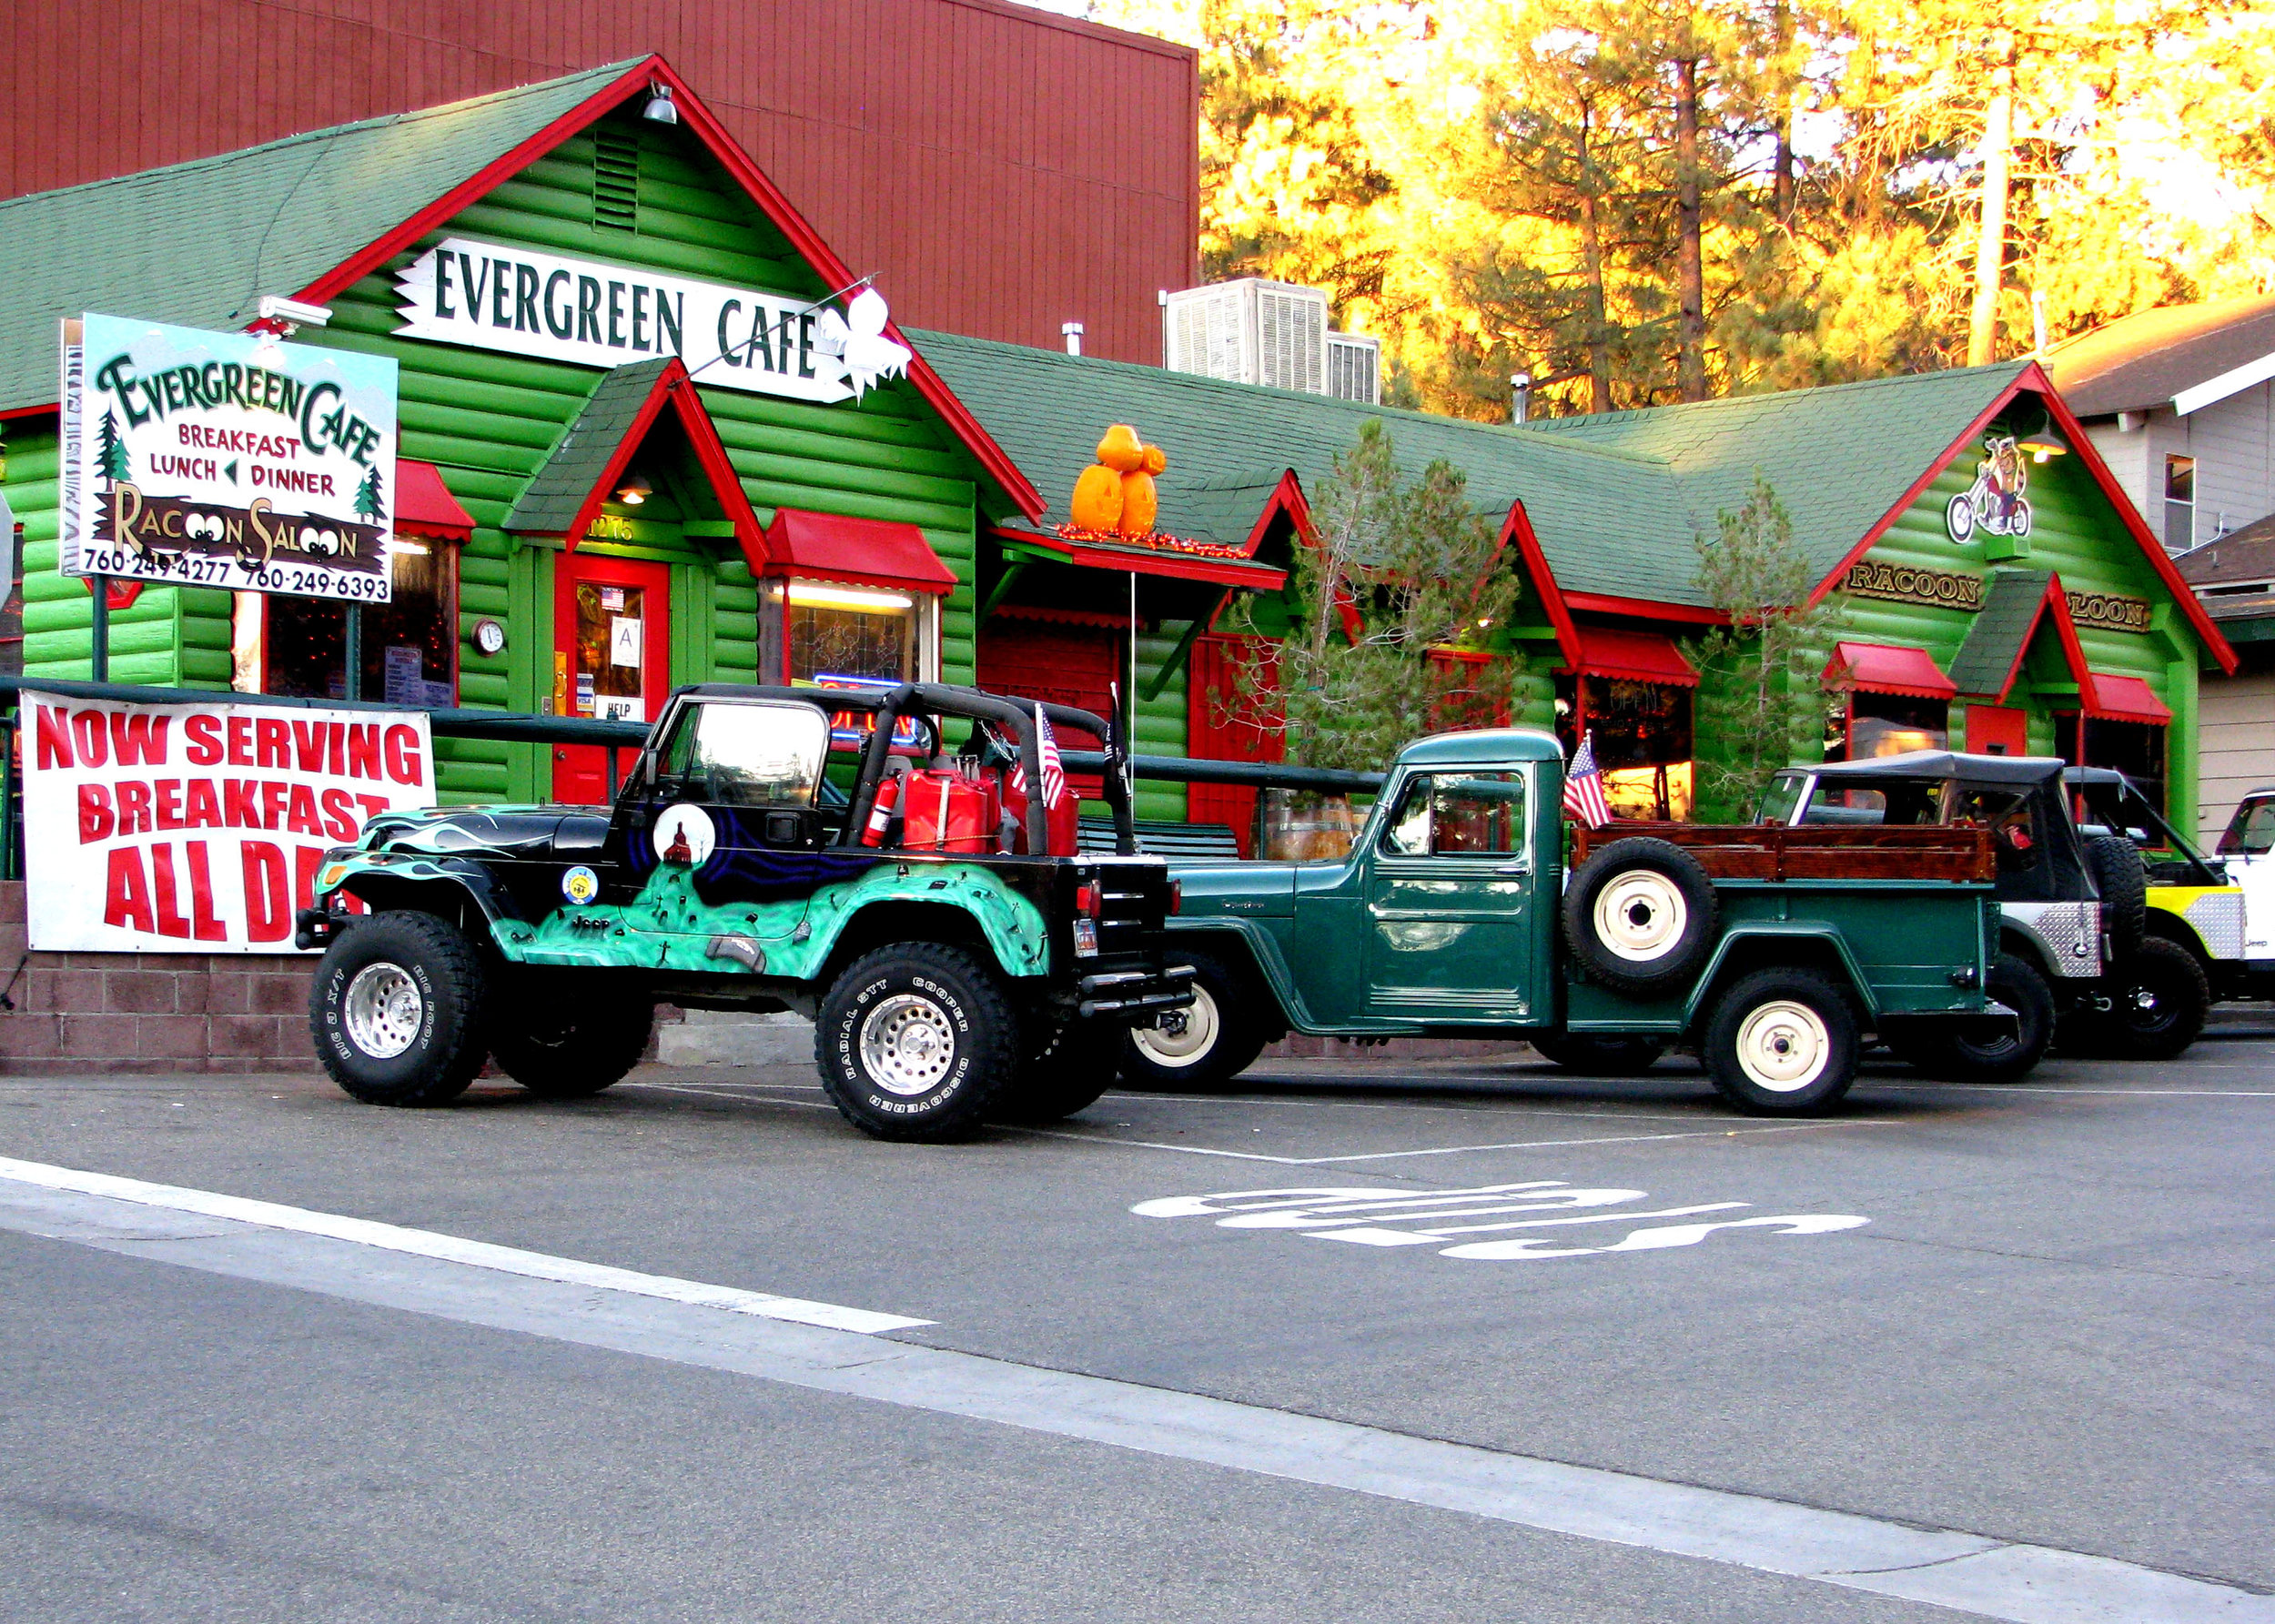 Evergreen Cafe in Wrightwood, California. Photo by Rennett Stowe via Flickr.